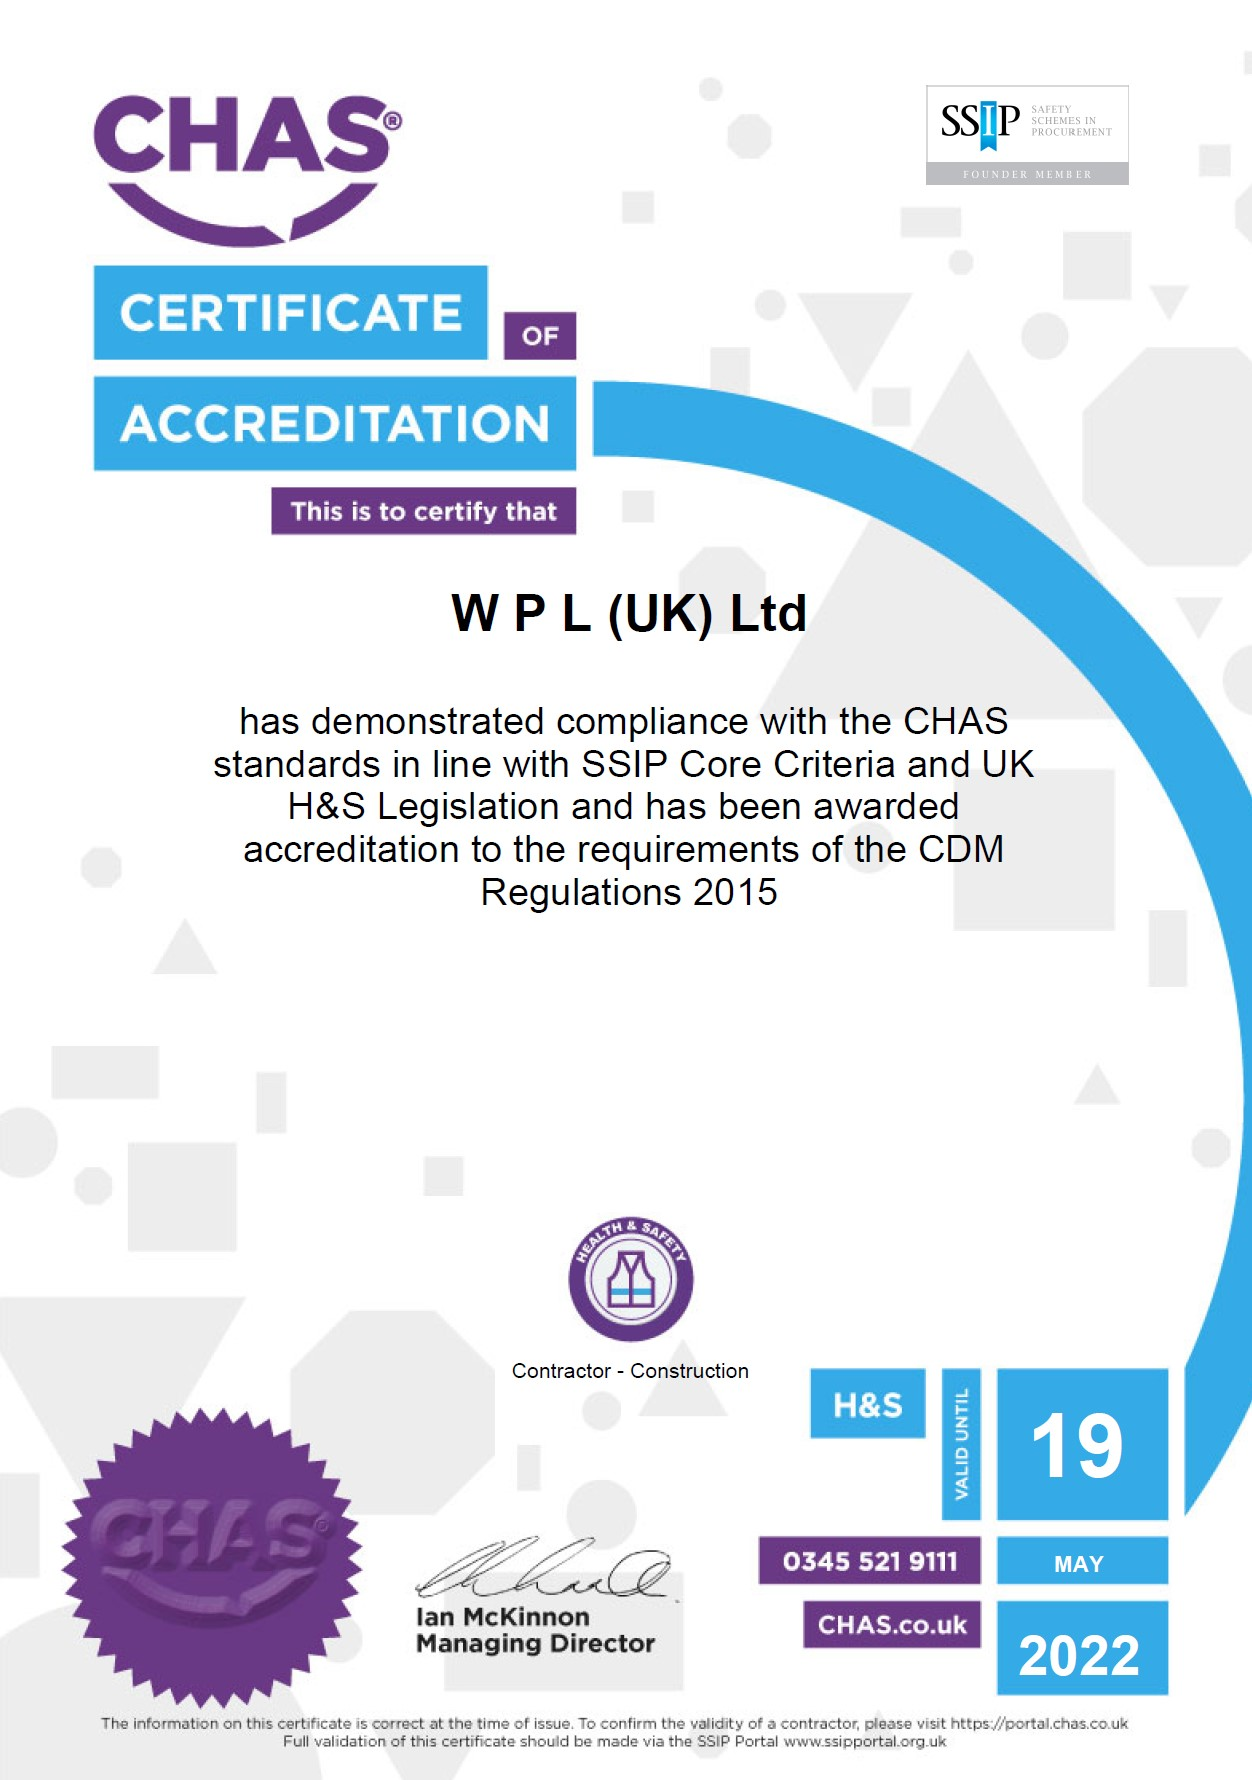 WPLUK CHAS SSIP Certification to 19th May 2022